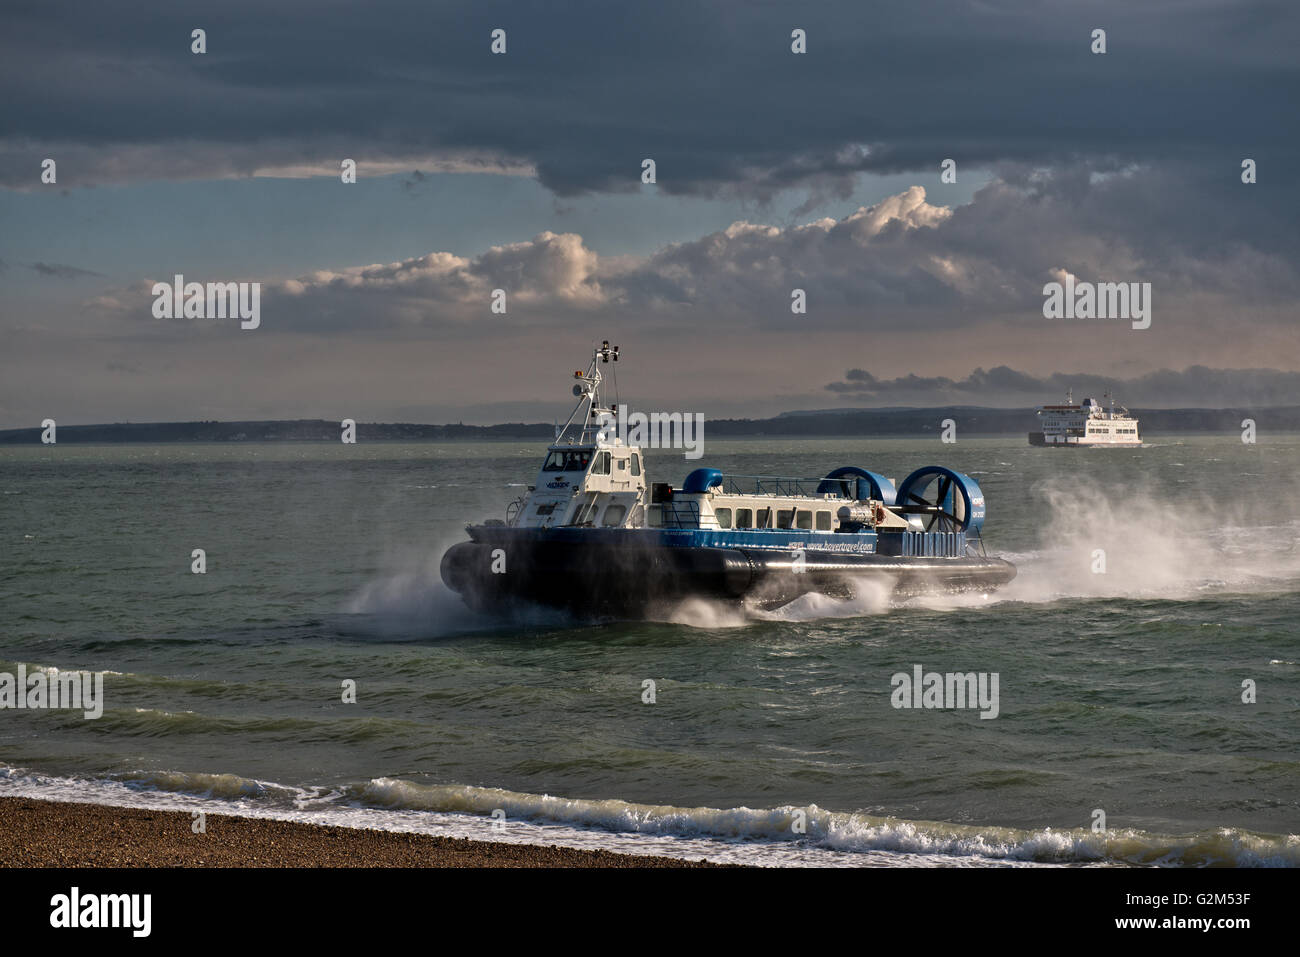 Hovercraft, AP1-88 – Island Express owned Hovertravel arriving at Southsea, Portsmouth, Hampshire, UK - Stock Image